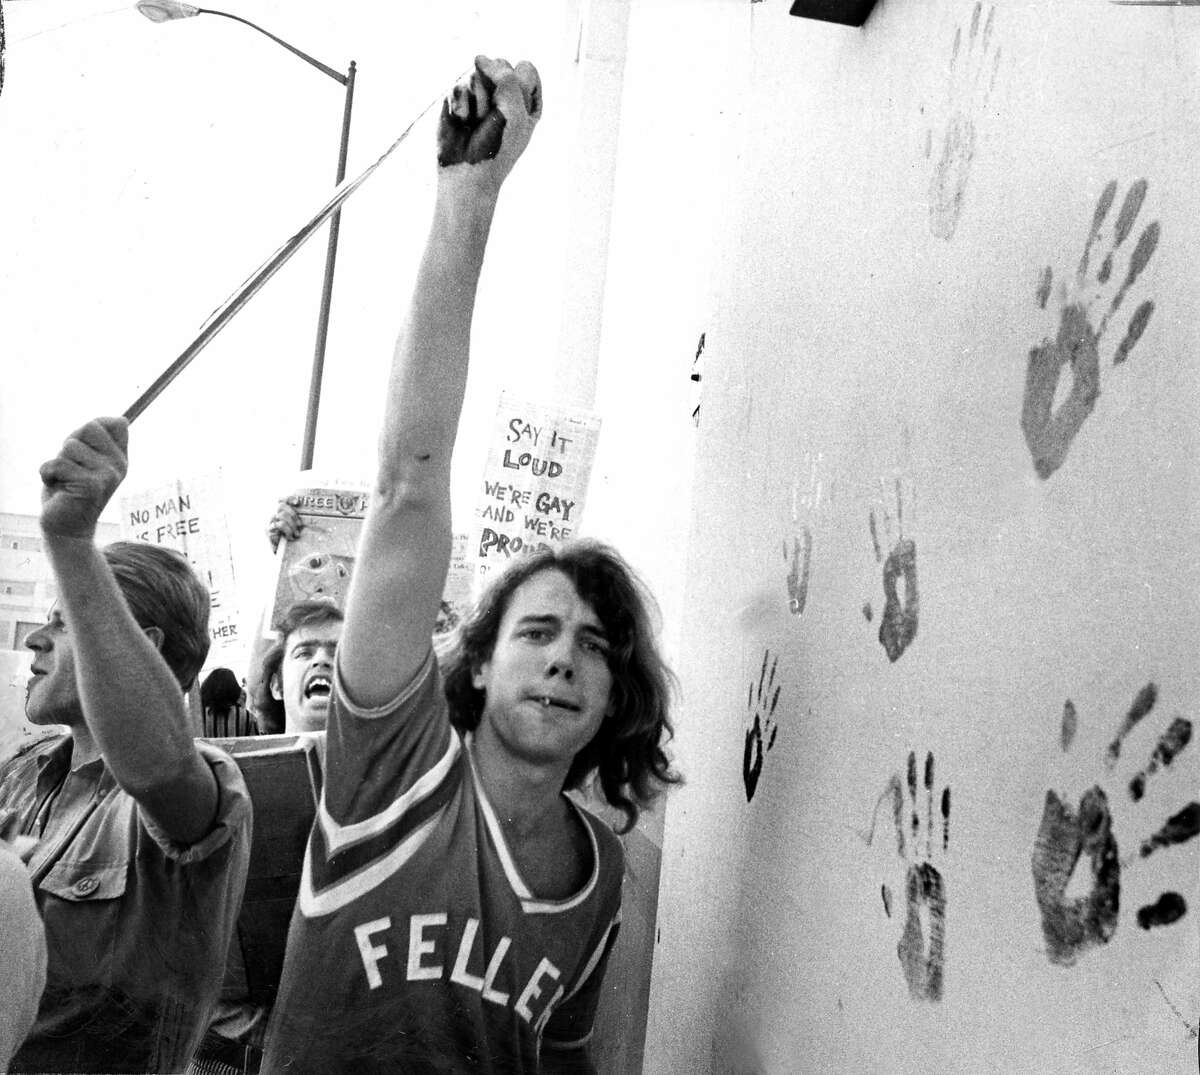 Nov. 1, 1969: Picketers support a pro-gay cause in 1969, using paint to make handprints on a San Francisco wall.